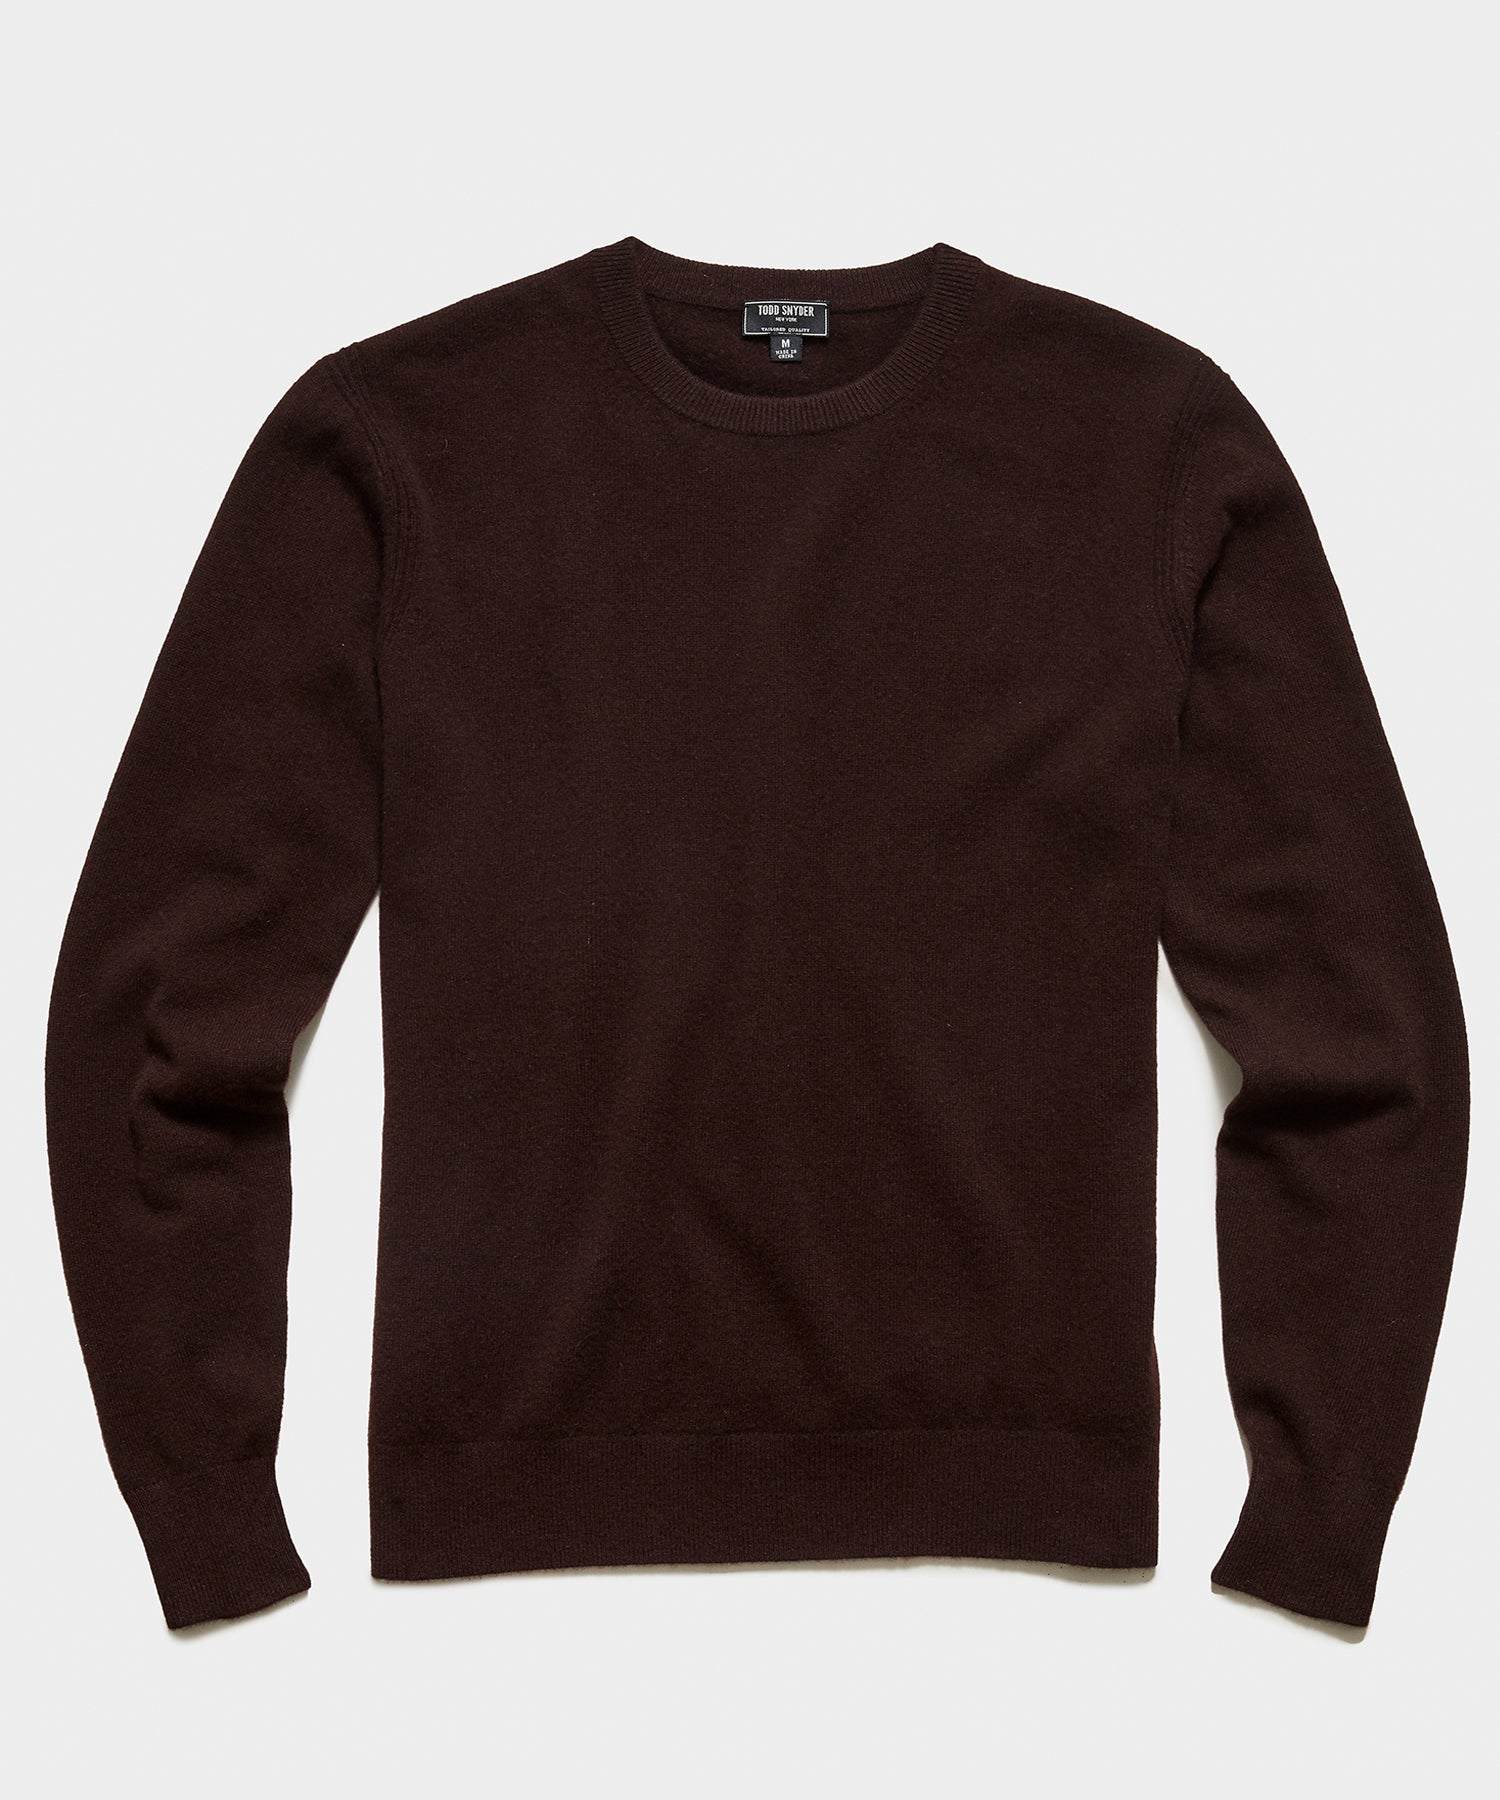 Cashmere Crewneck Sweater in Burgundy